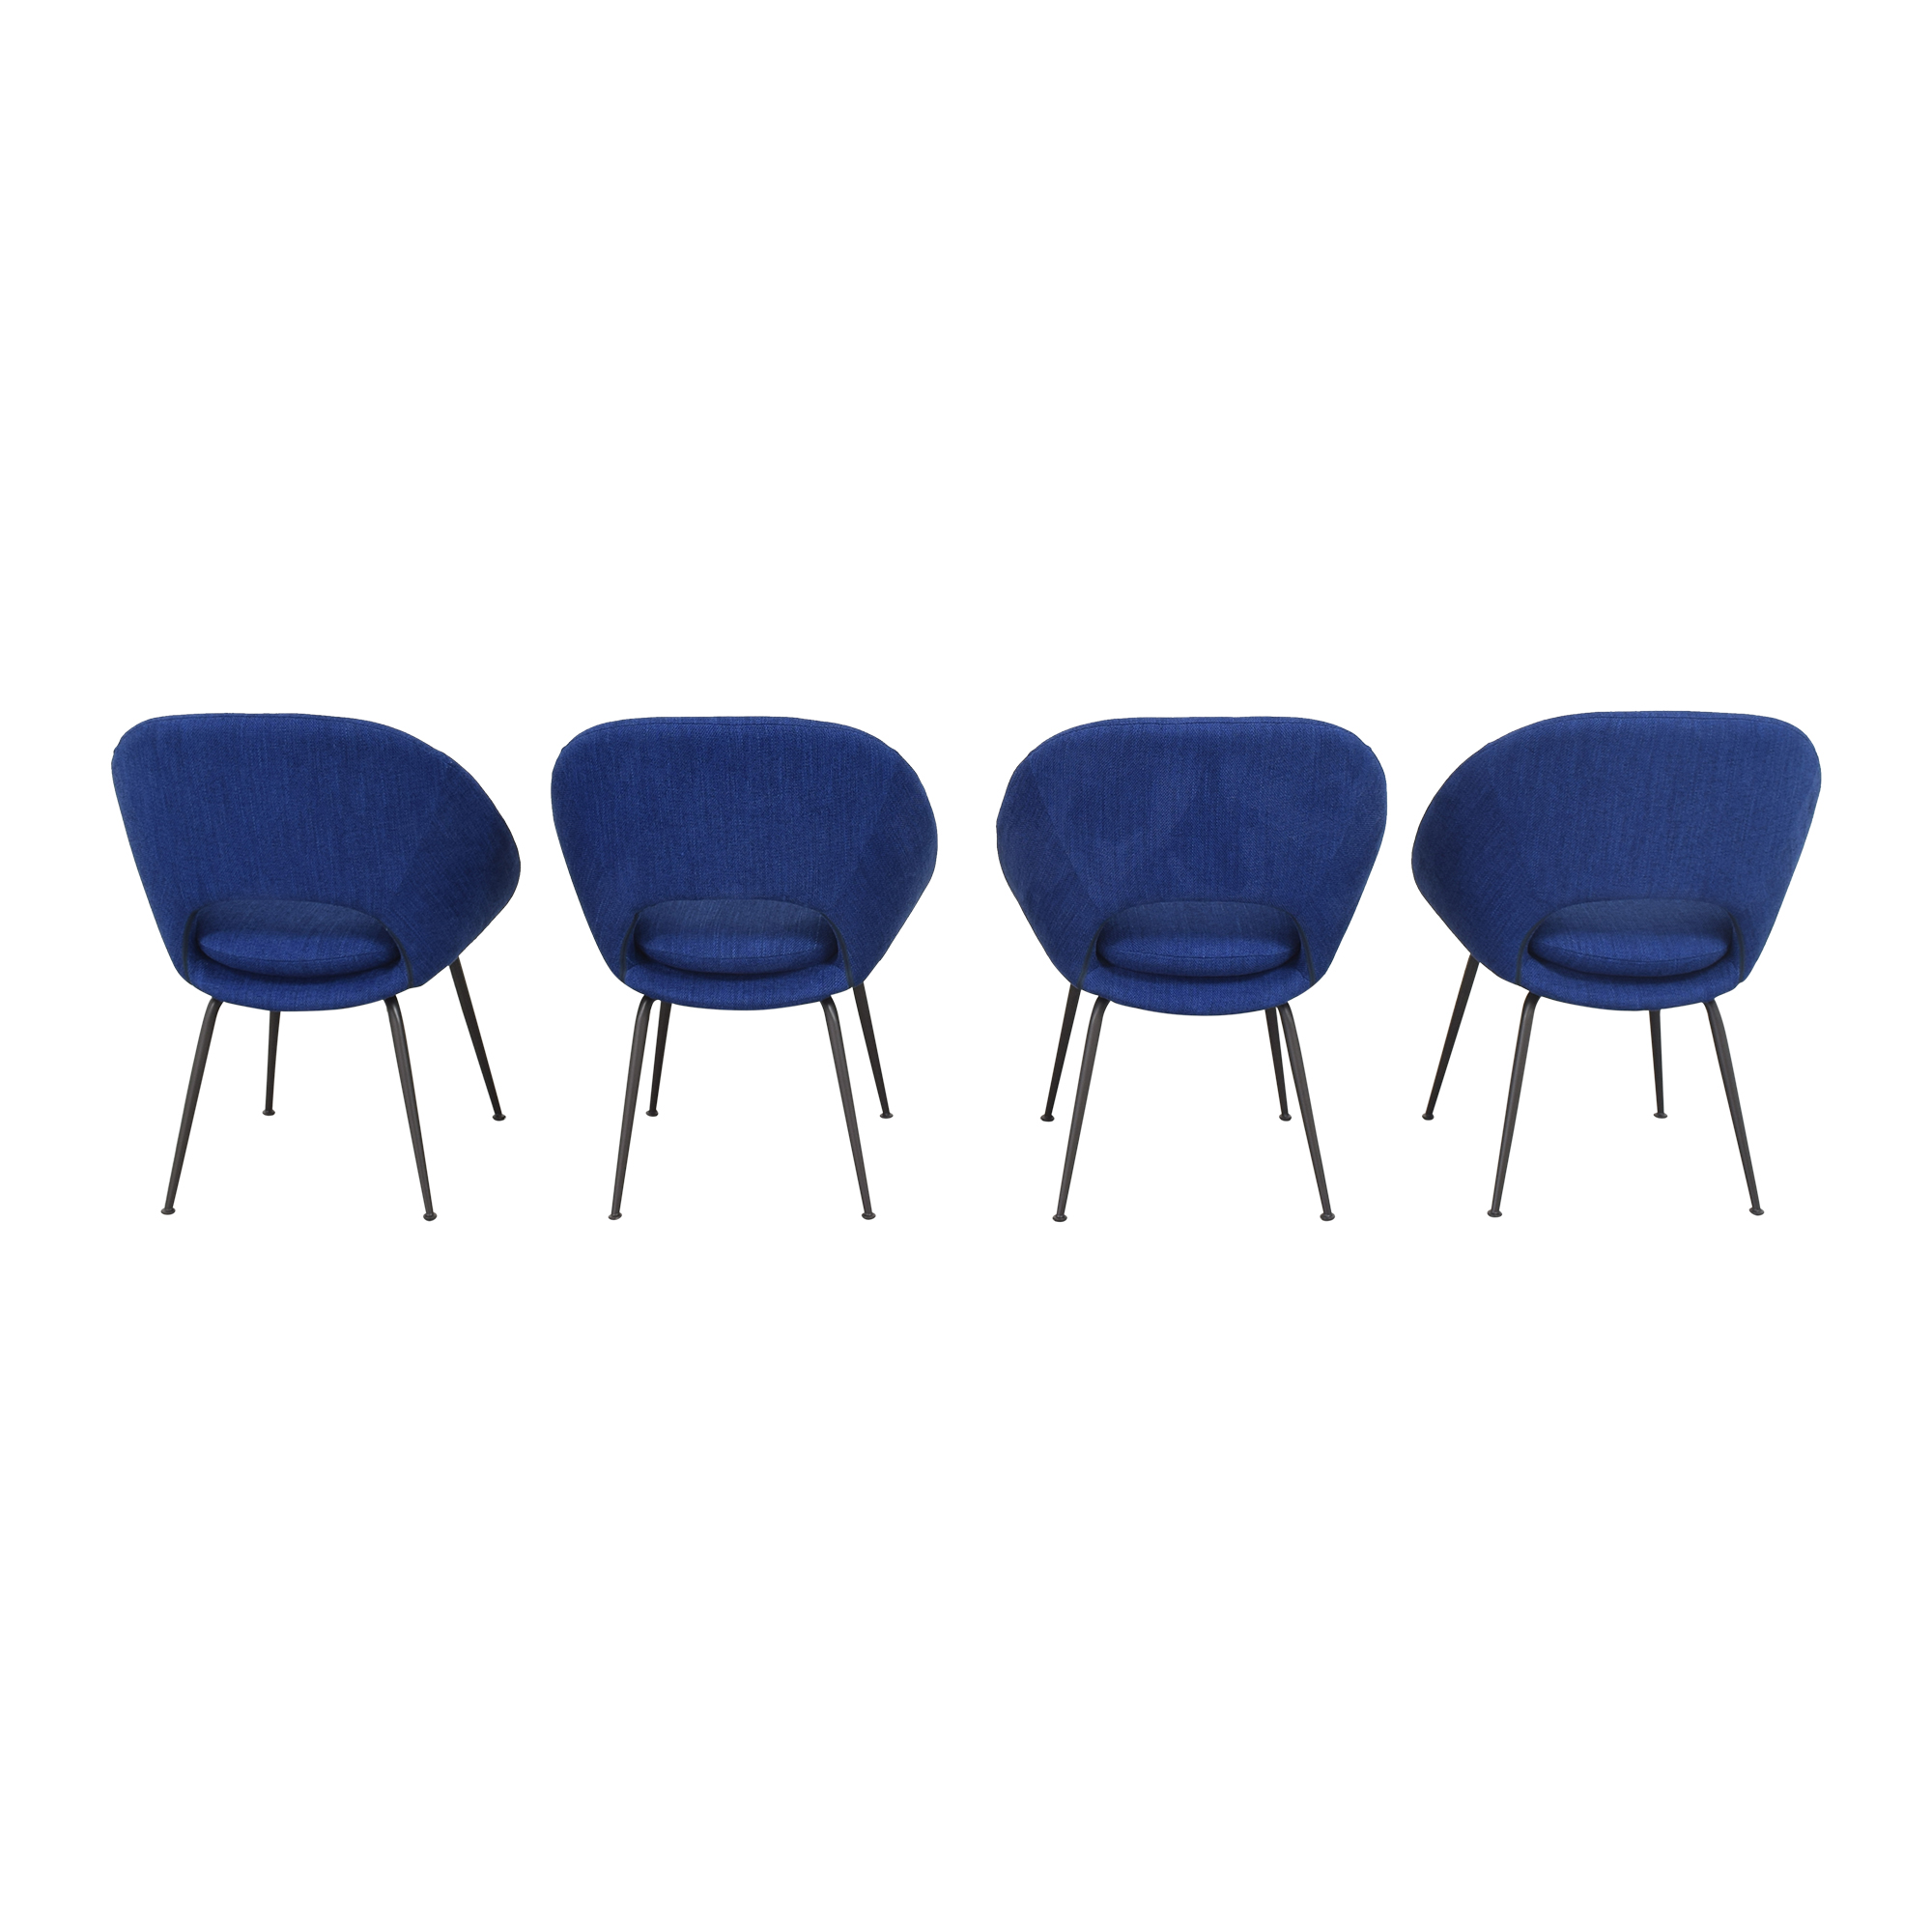 buy West Elm West Elm Orb Upholstered Dining Chairs online